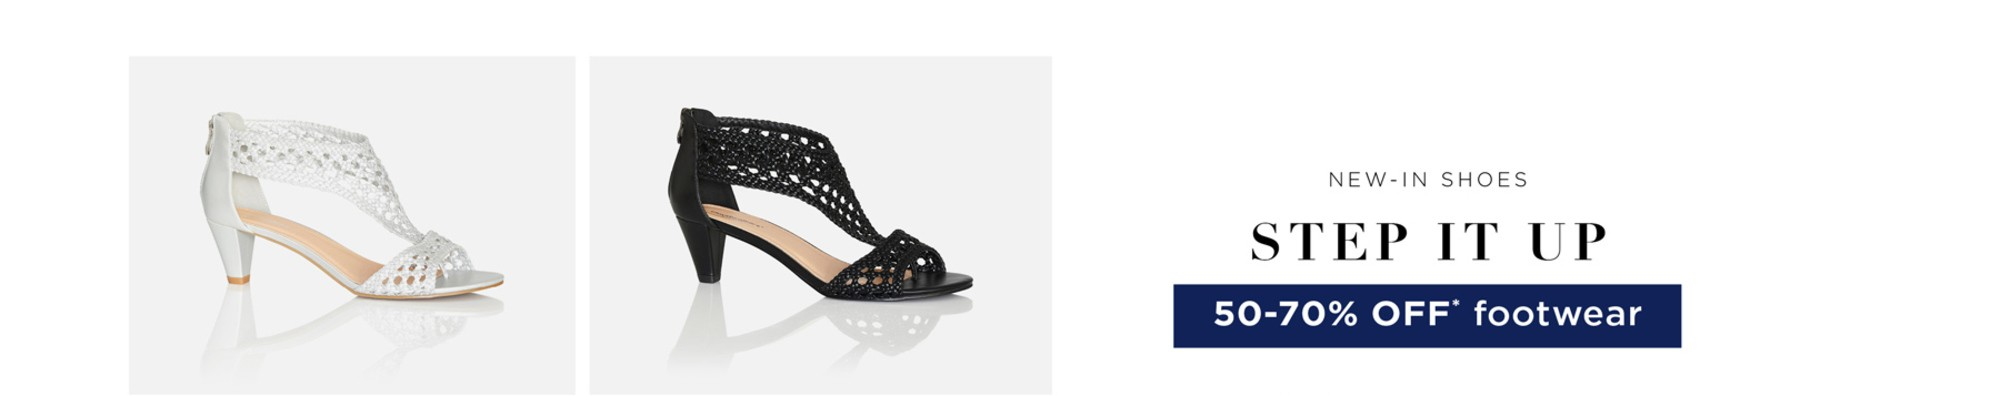 Step it Up - 50 - 70% Off* All Footwear - See Terms & Conditions for full details - prices as marked - SHOP NOW